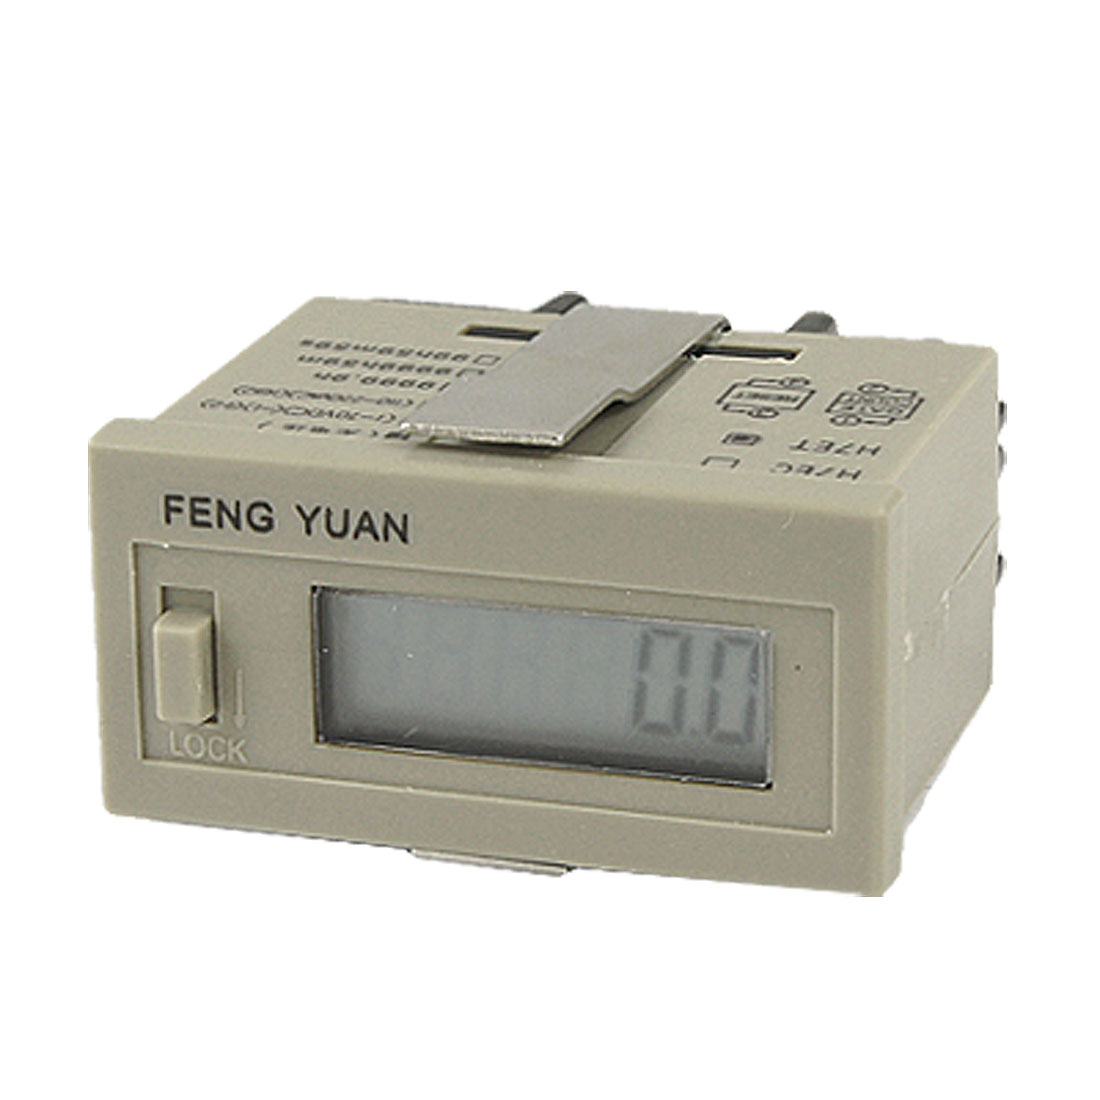 No-voltage Required 0-9999h59m Counting Range Time Counter